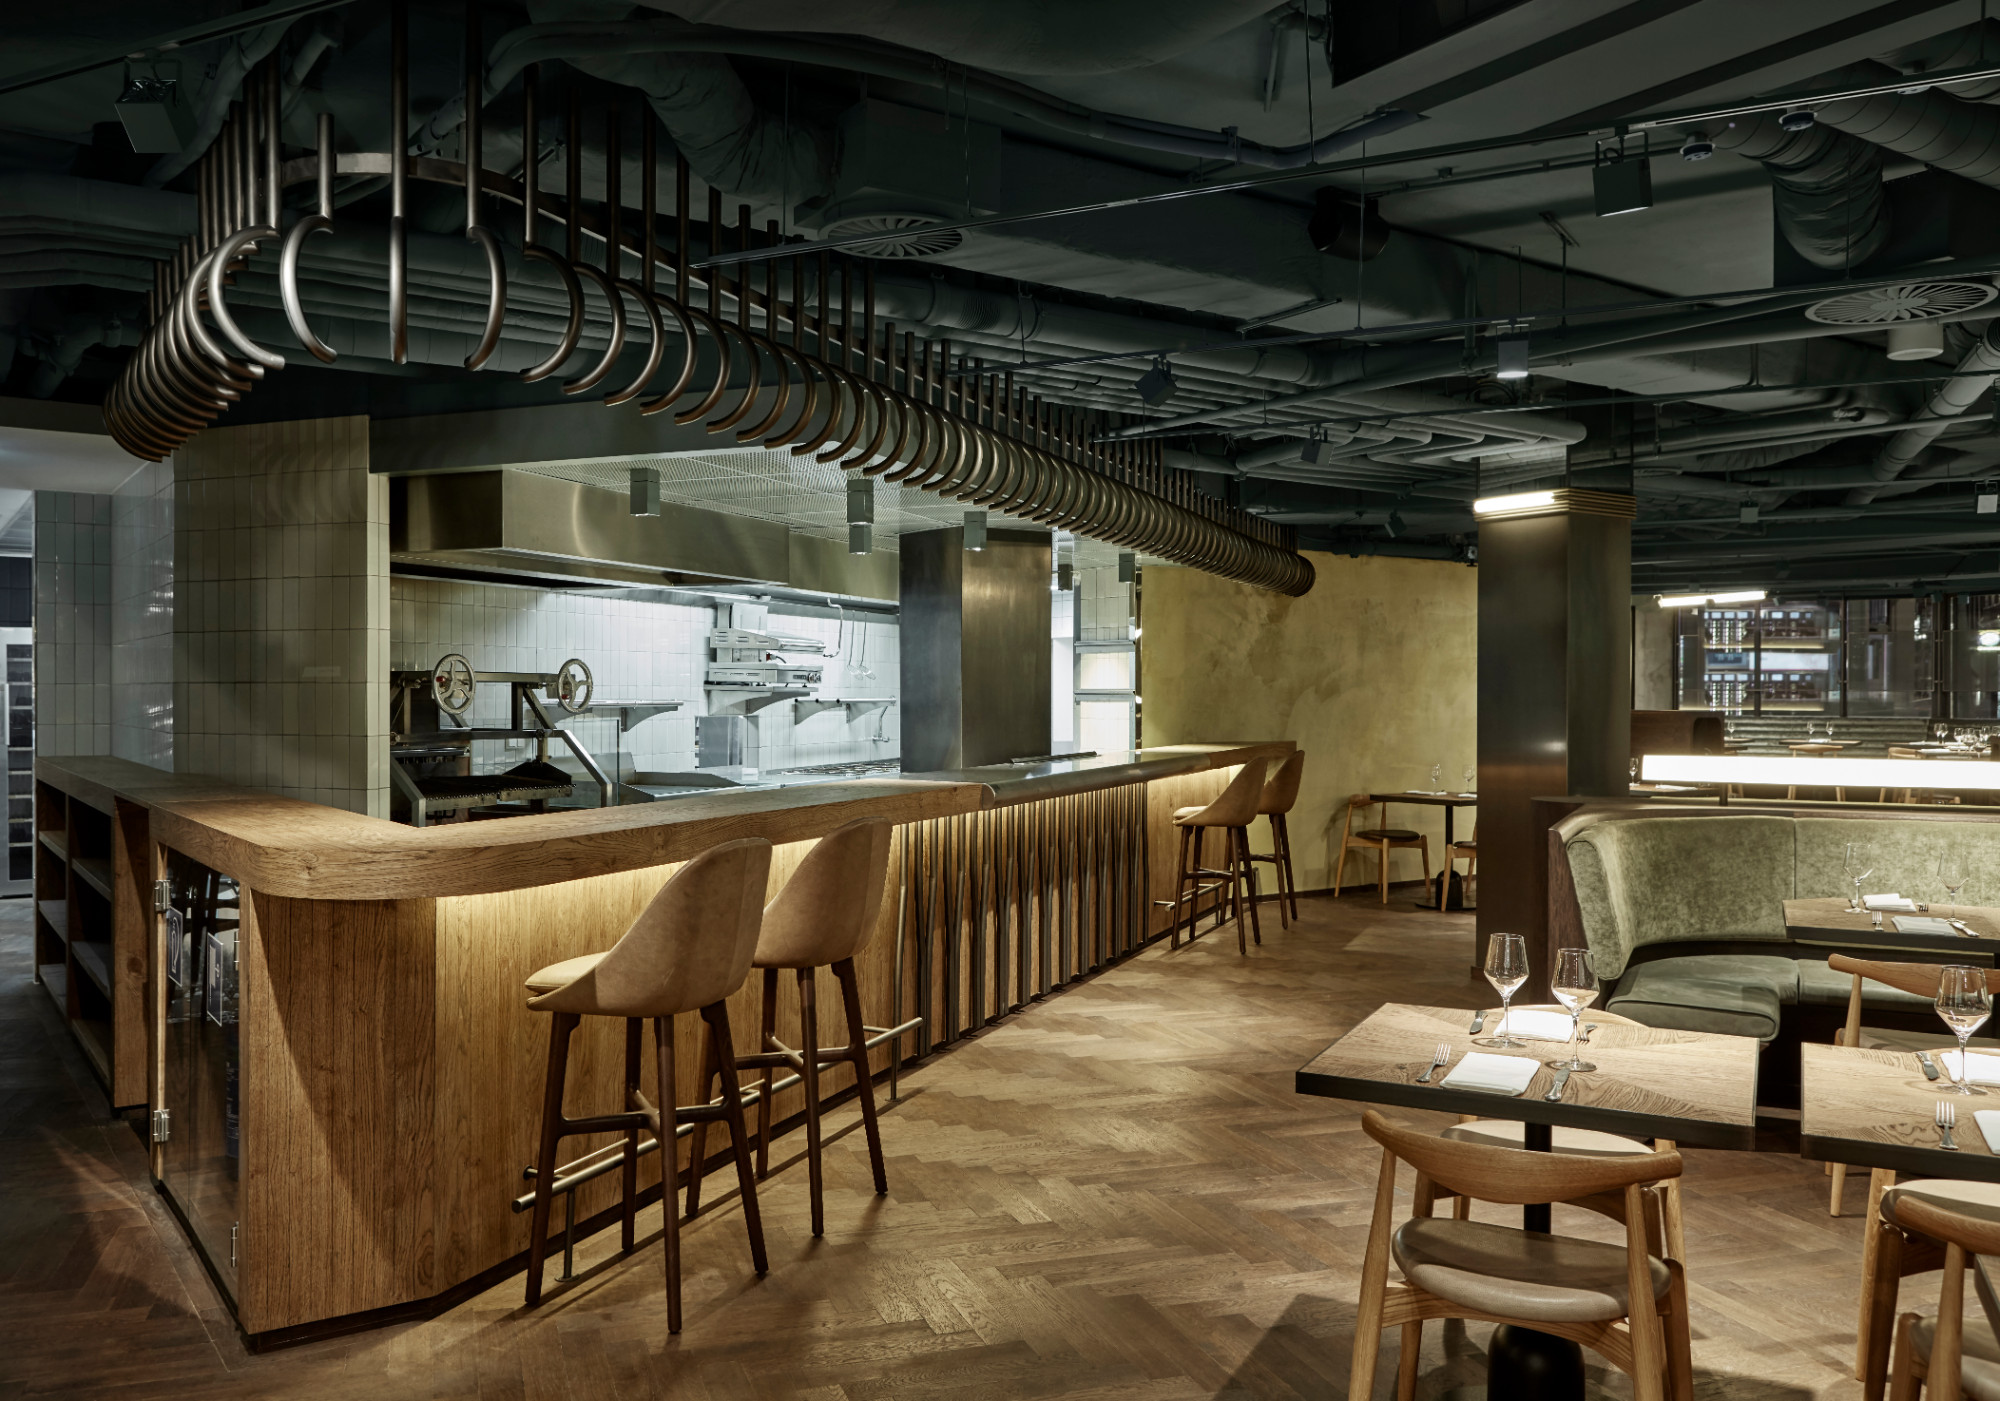 Weyers restaurant bar studio modijefsky de architect for Restaurant interior design app